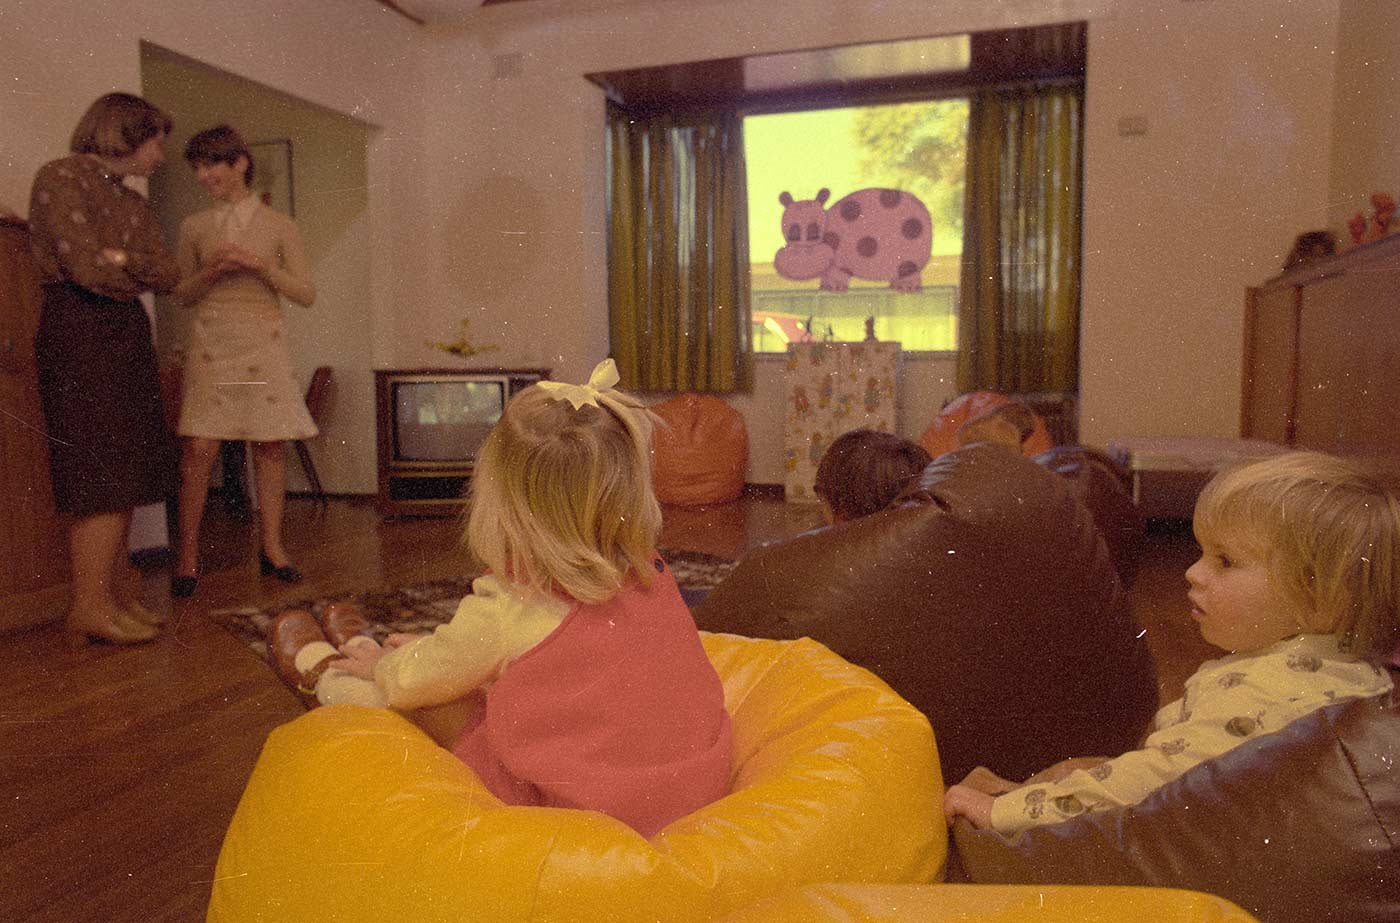 Colour photograph showing a side and rear view of five small children sitting on beanbags, watching a television in the opposite corner. Two women stand talking at the left of the image. A purple hippopotamus transfer is seen on a window at the far end of the room. - click to view larger image